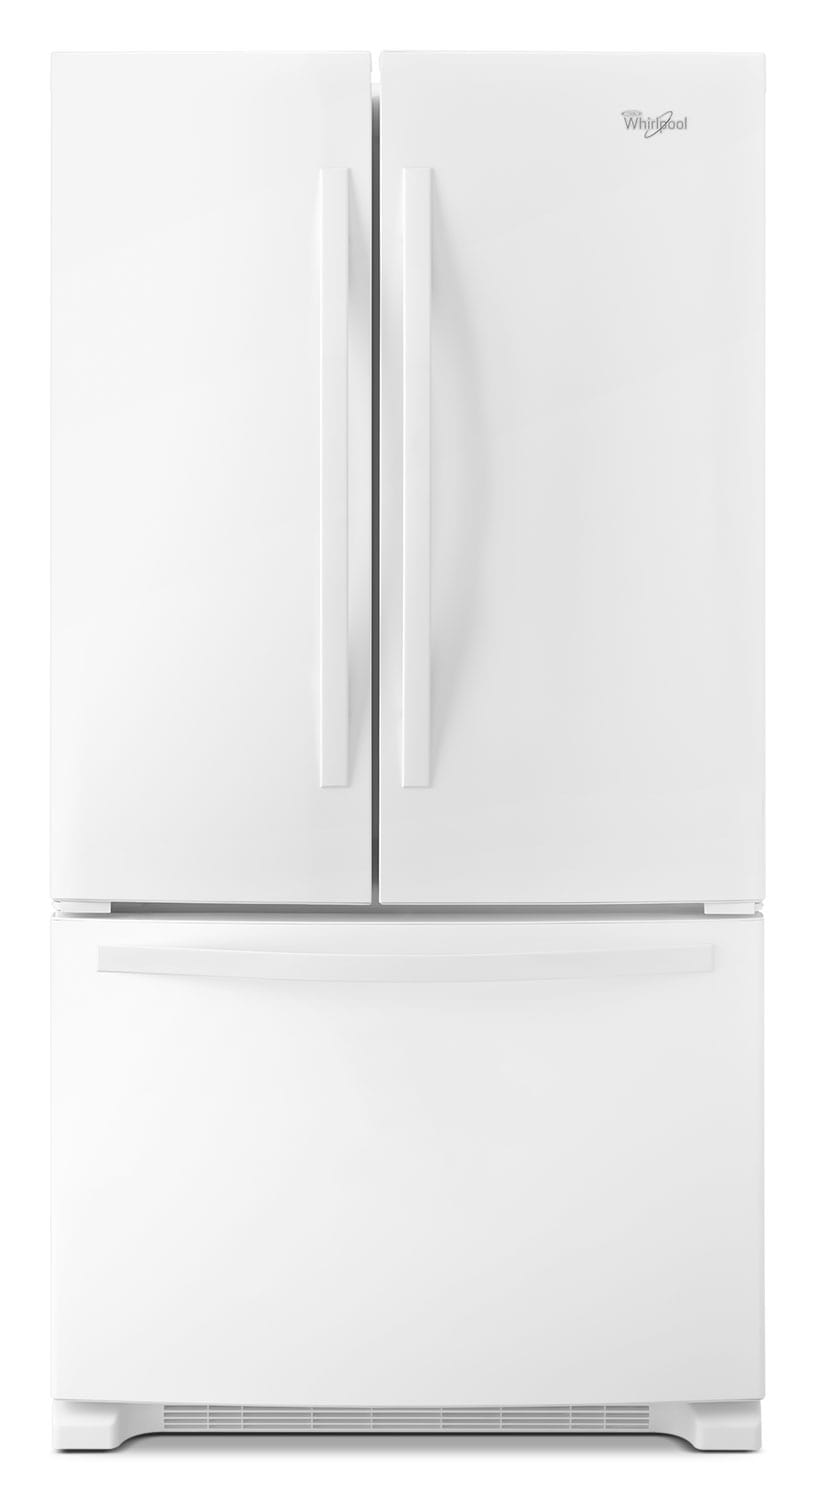 Whirlpool 22 Cu. Ft. French-Door Refrigerator – WRF532SNBW